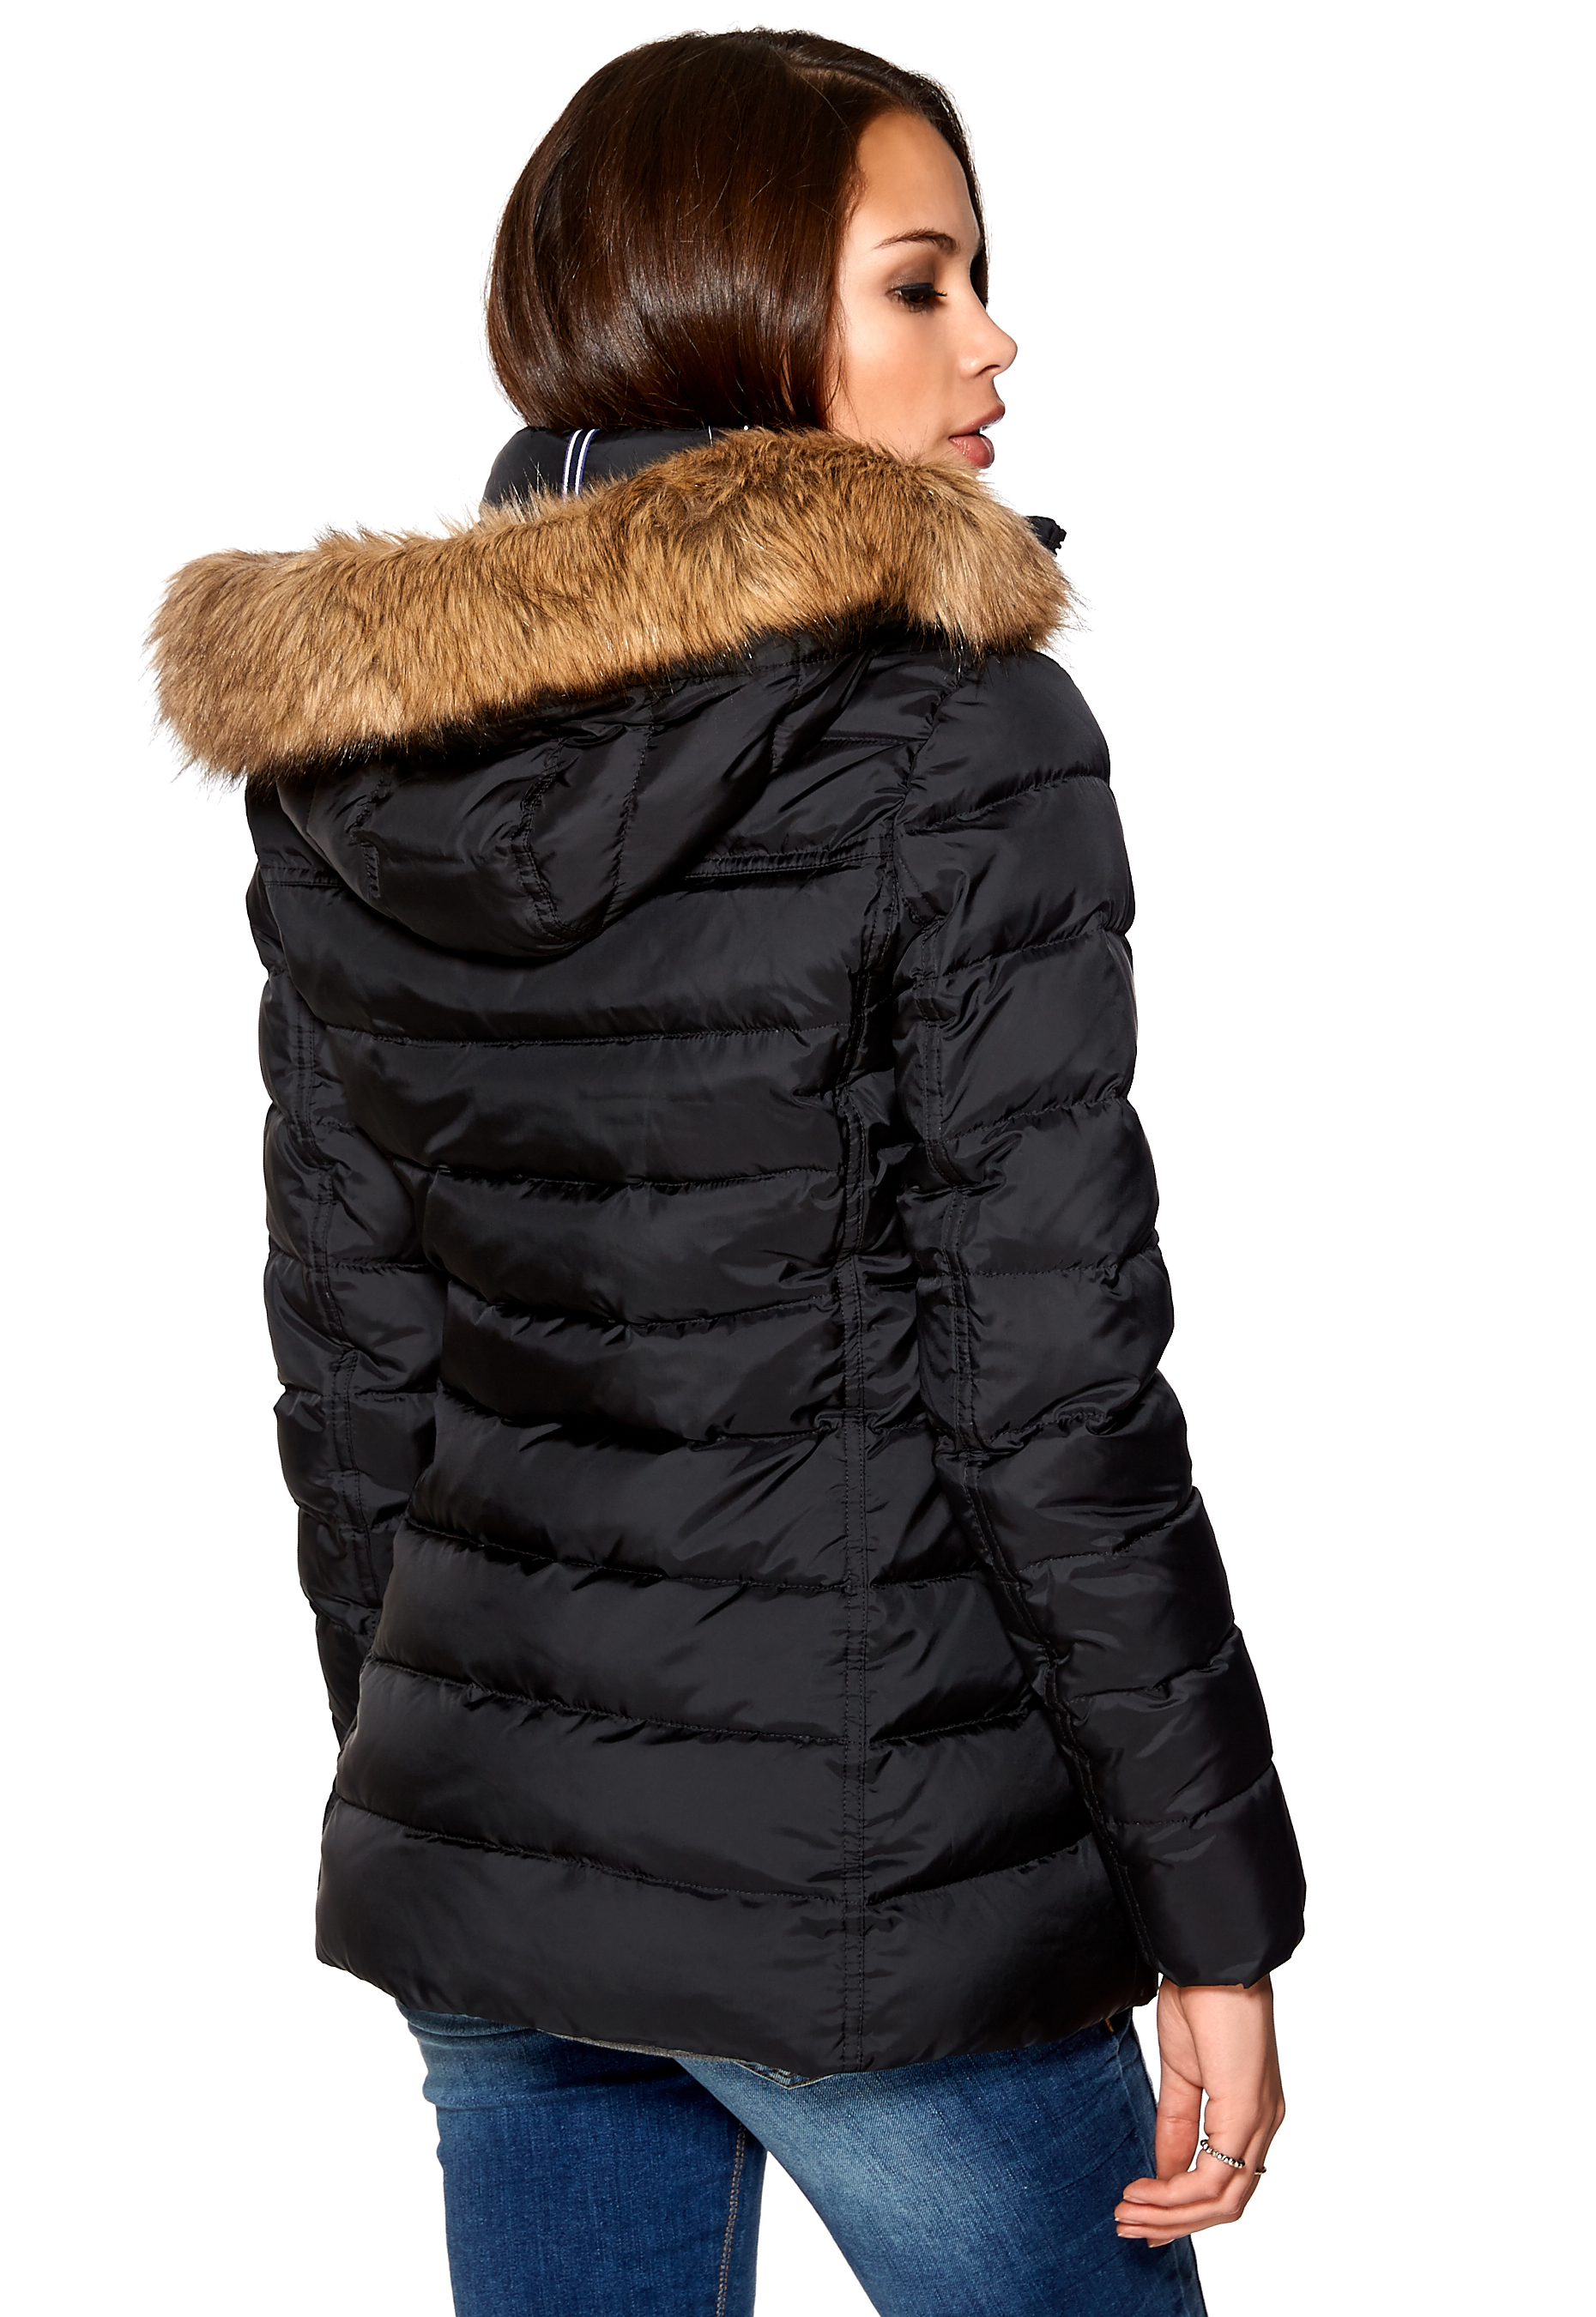 7987a652 TOMMY HILFIGER Tyra Down Jacket Masters Black - Bubbleroom